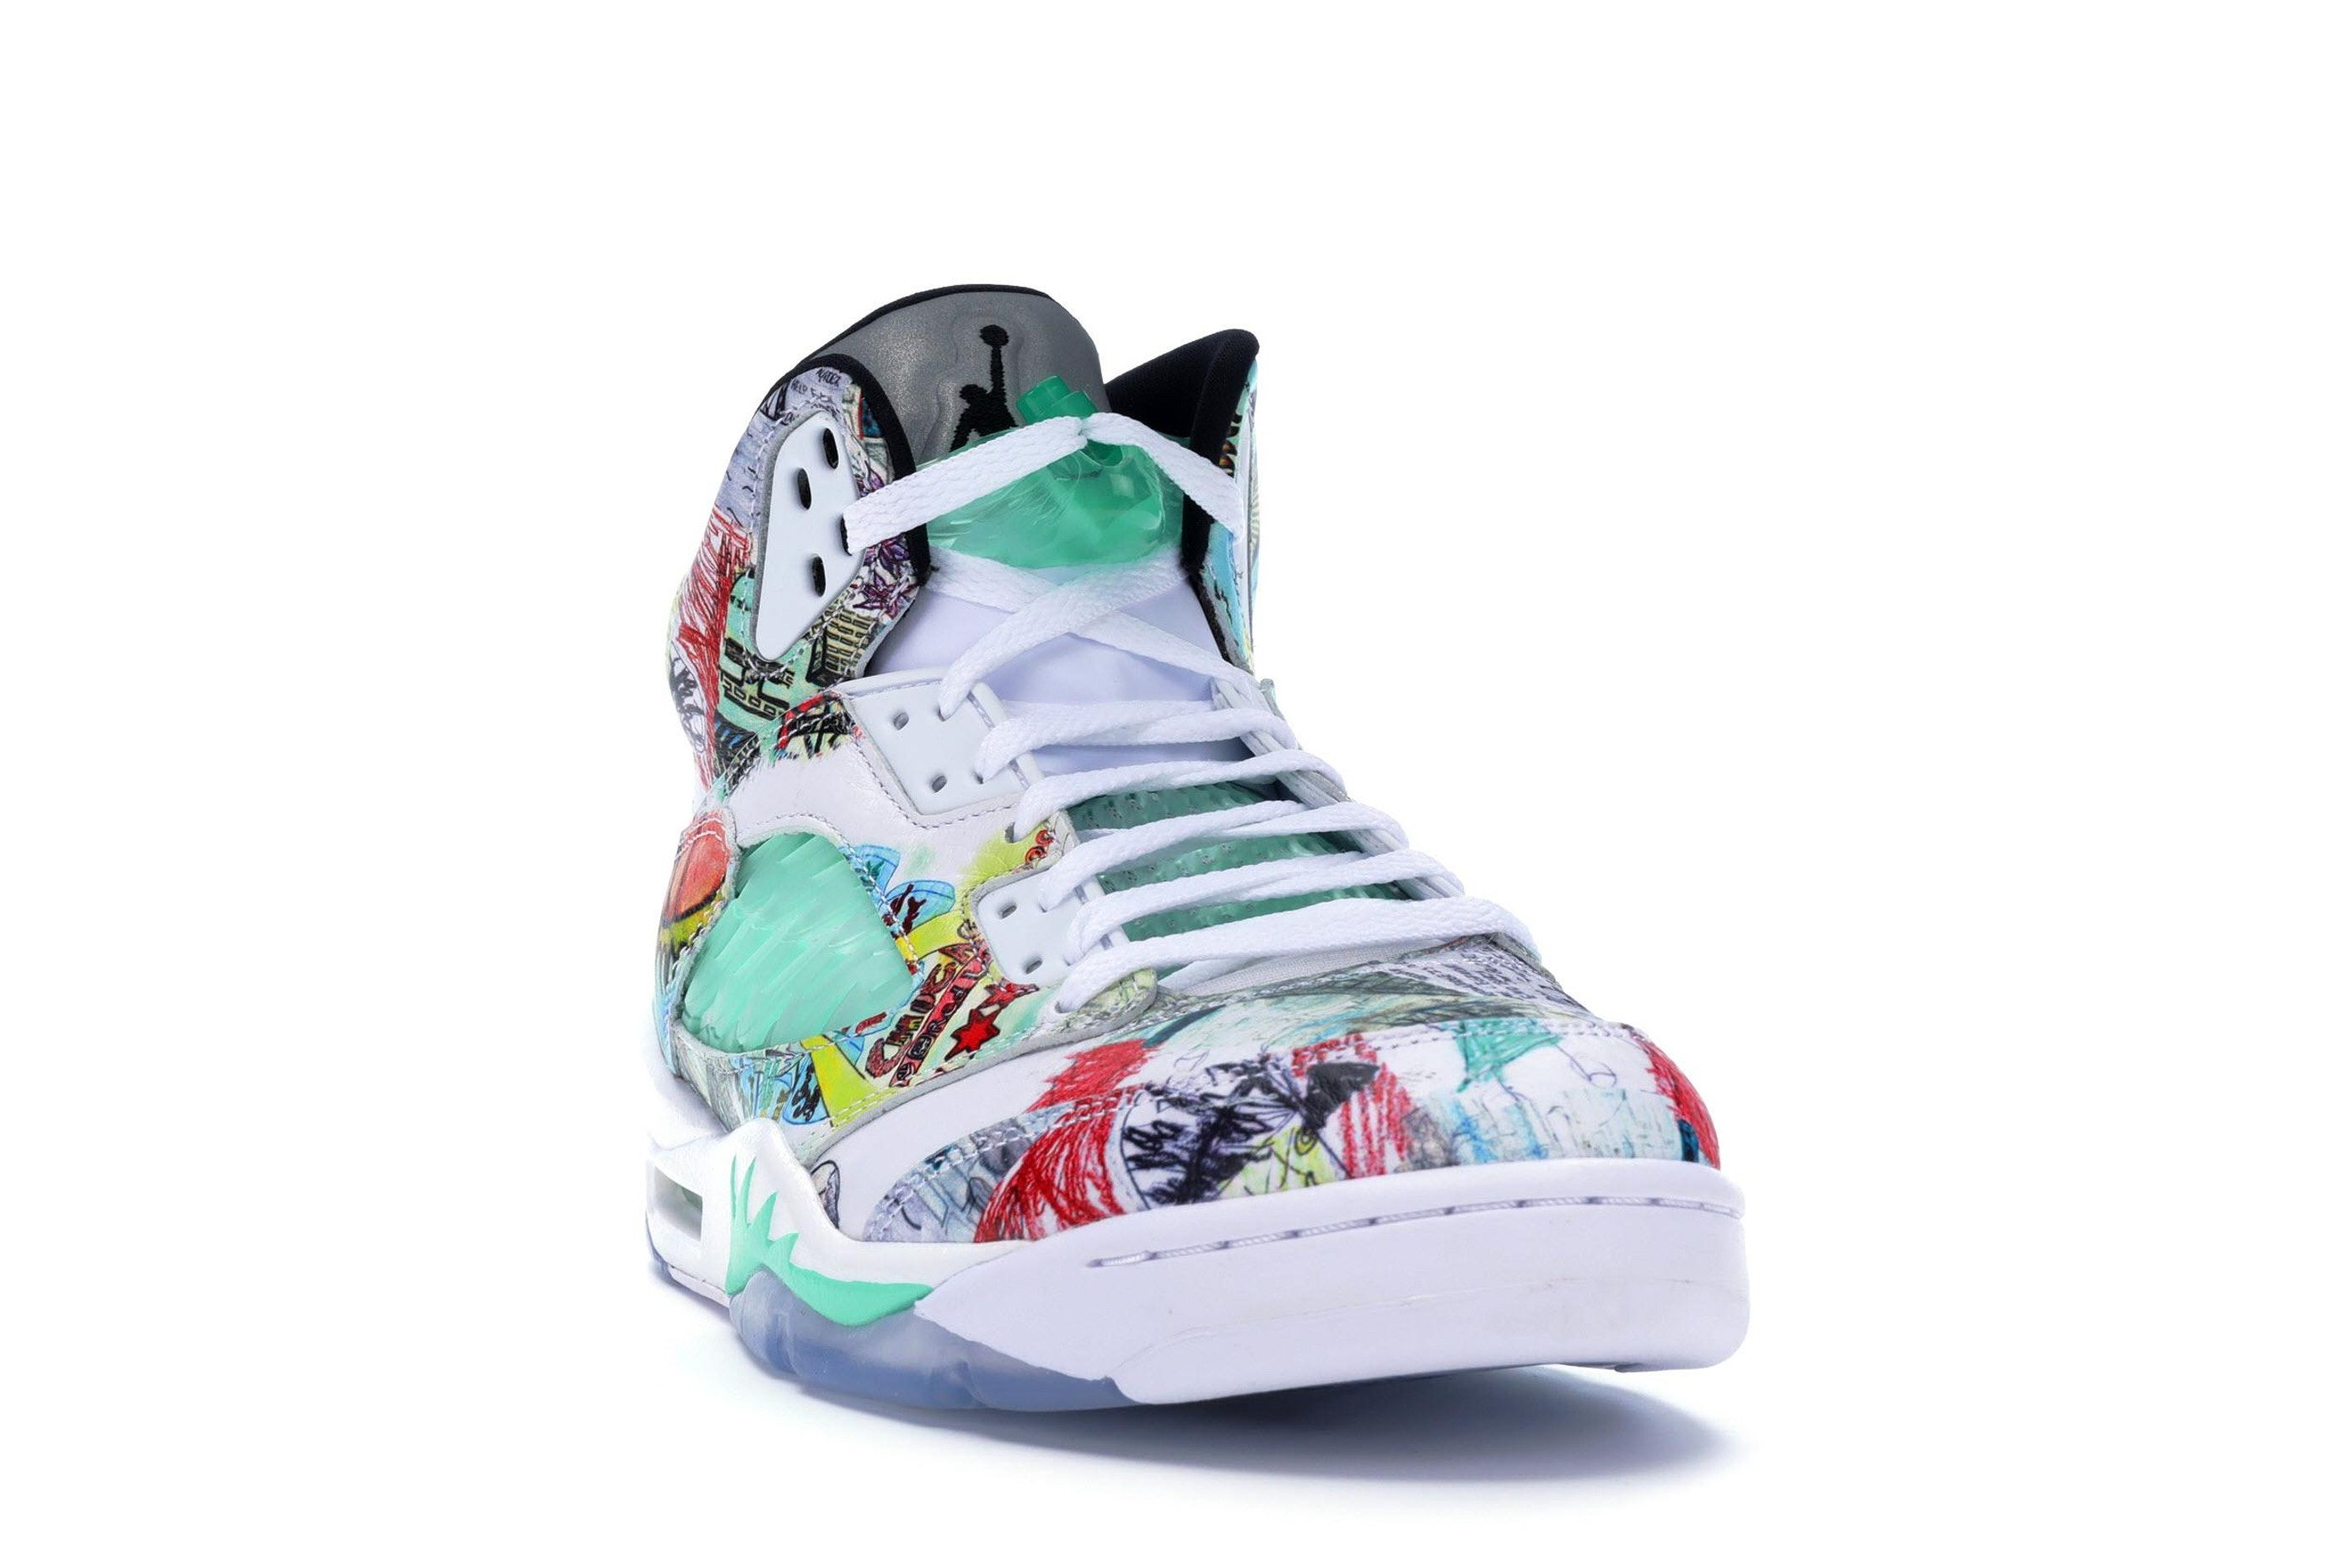 new product 6ed40 fab68 Jordan 5 Retro Wings | shoes | Sneakers, Shoe collection, Shoes